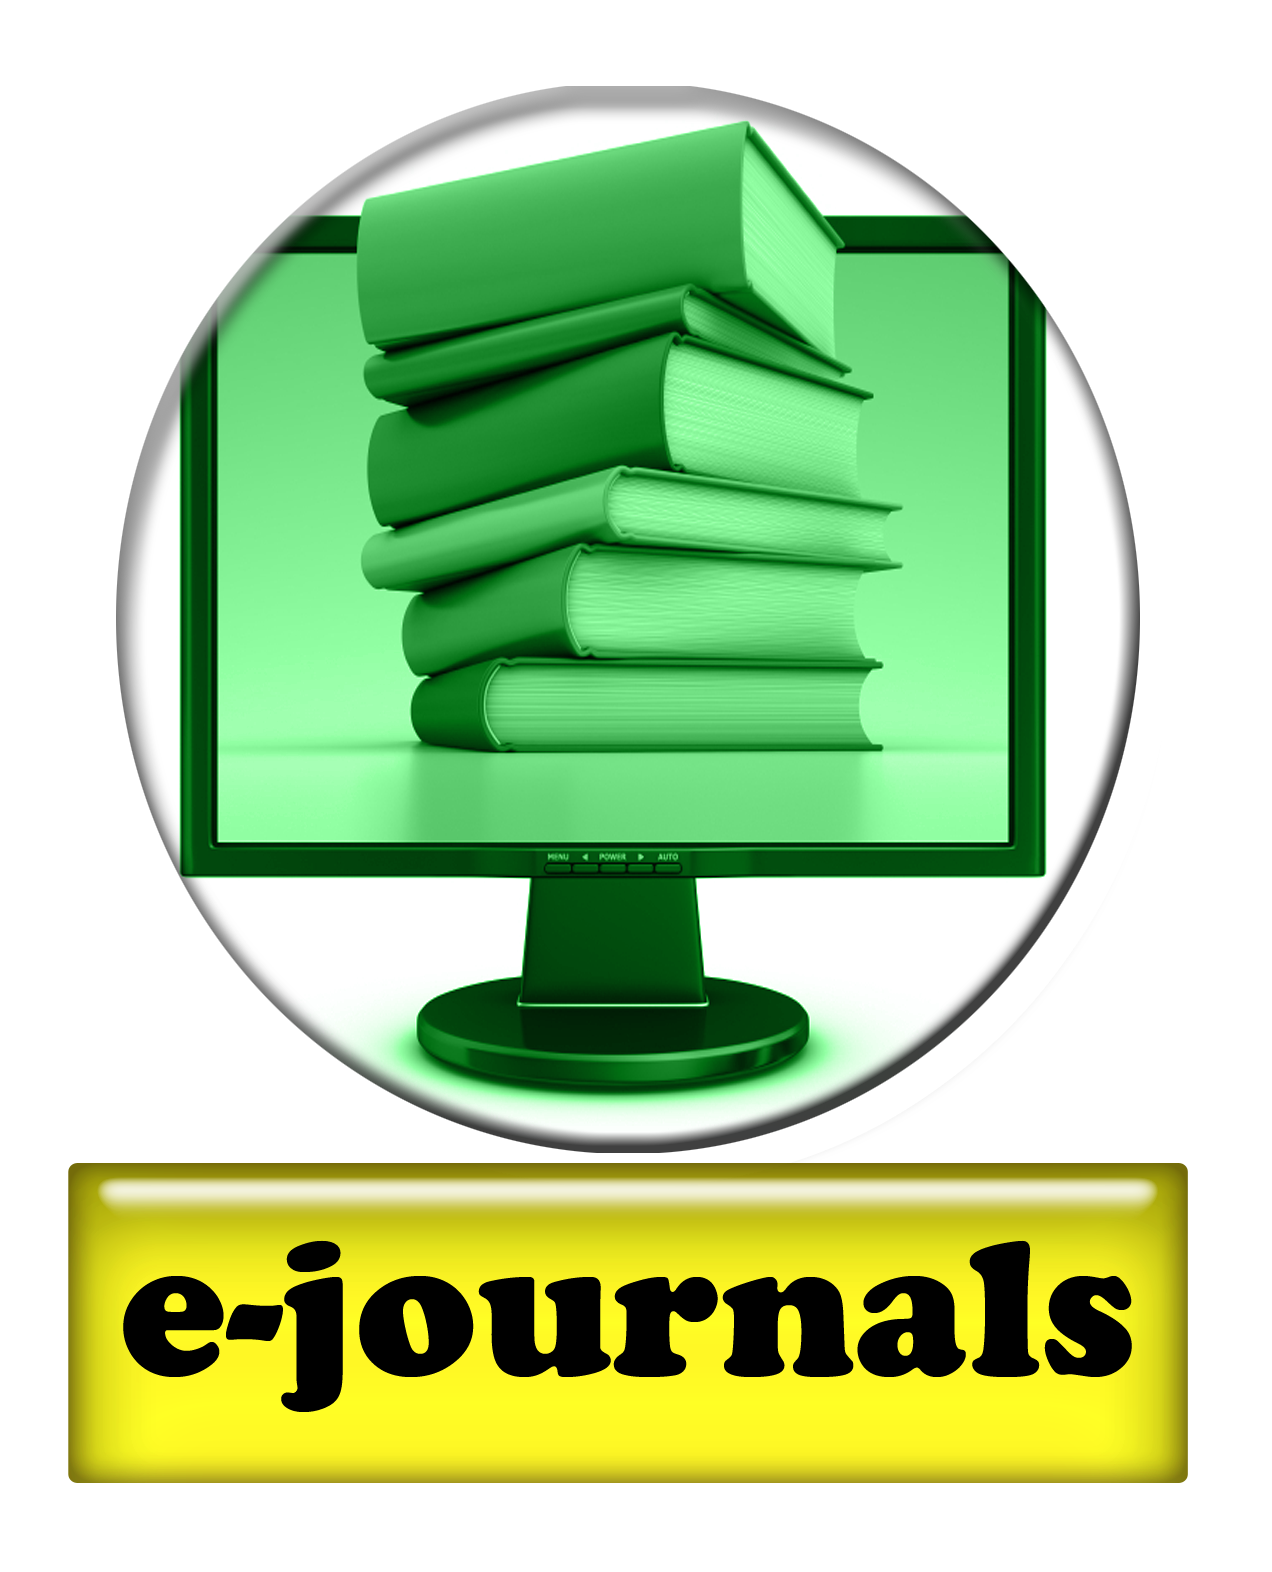 e-journals Universitas Khairun